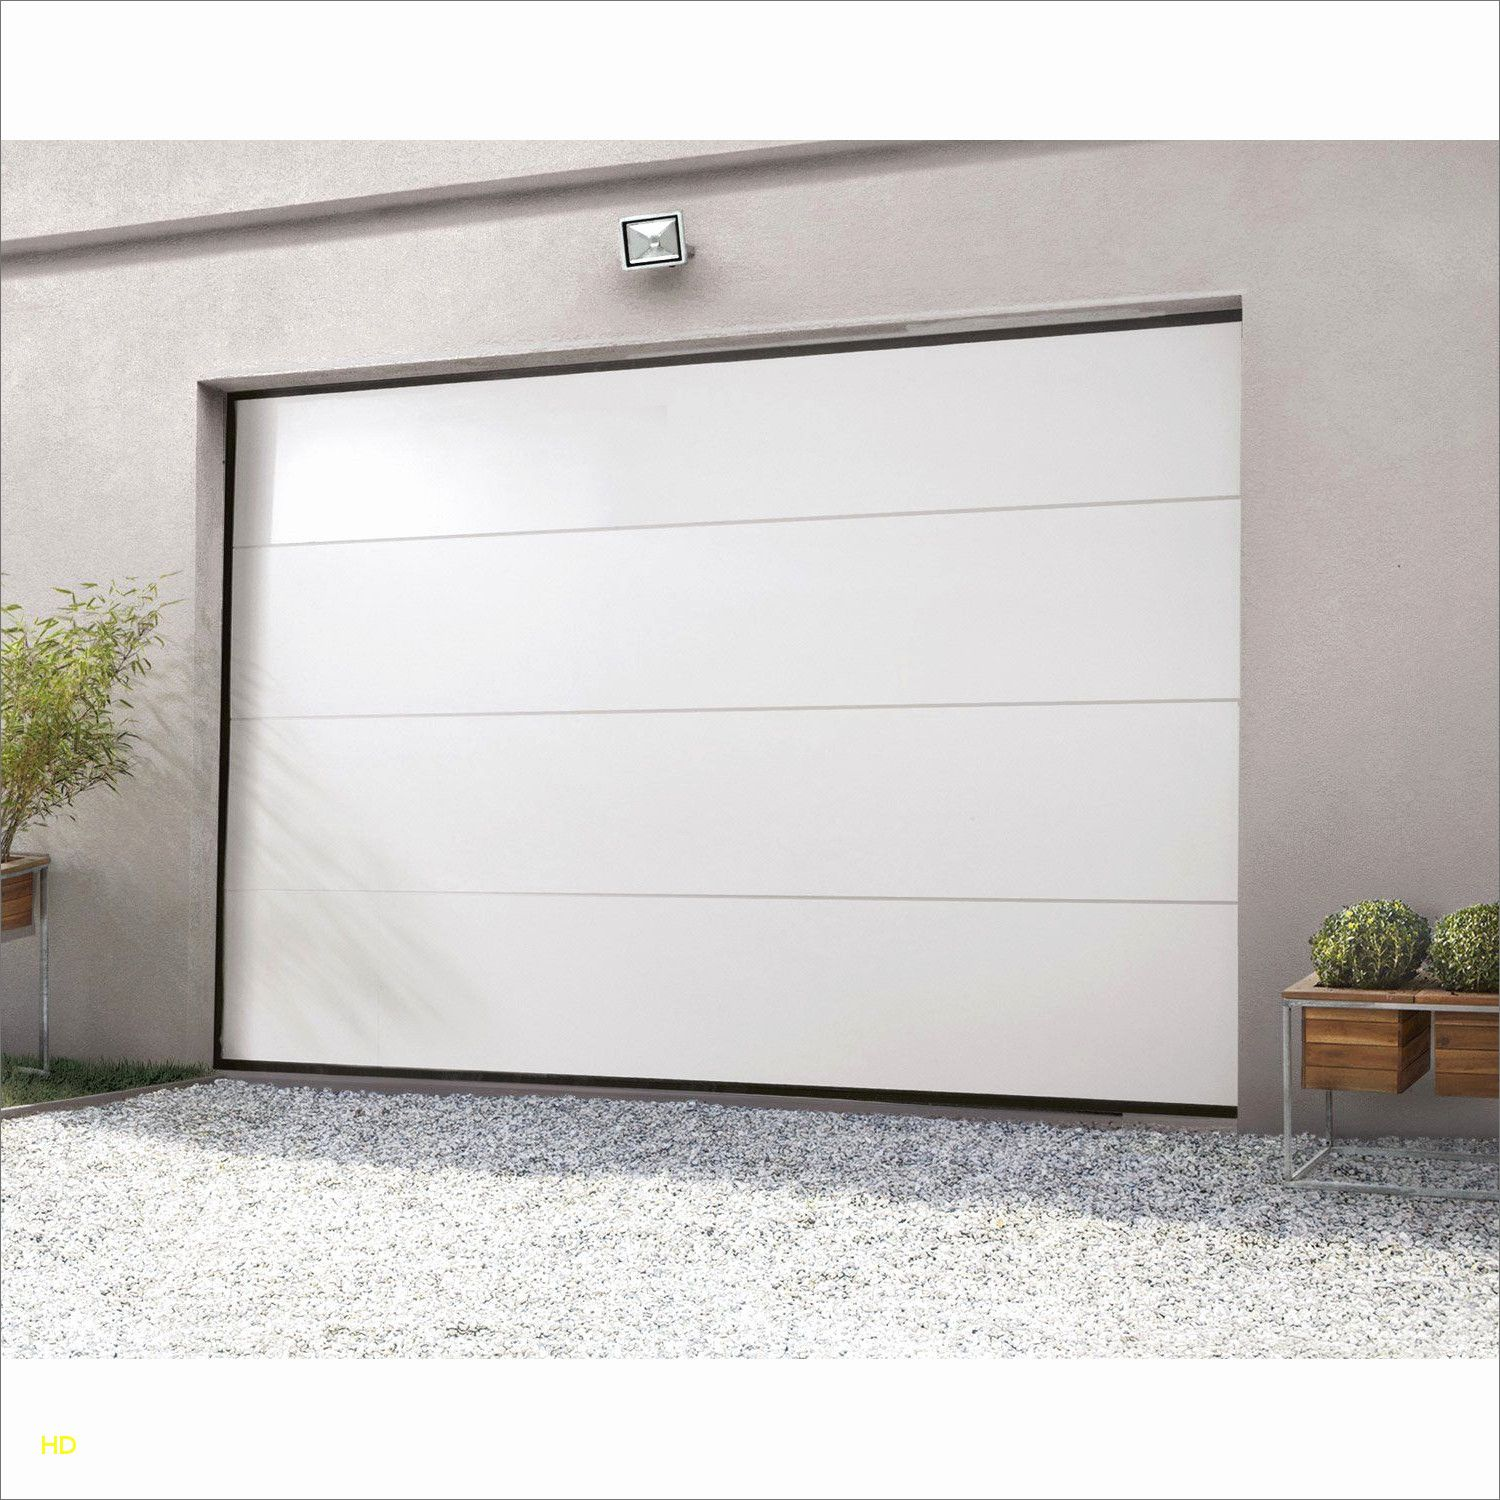 Best Of Leroy Merlin Porte De Garage Sectionnelle Porte De